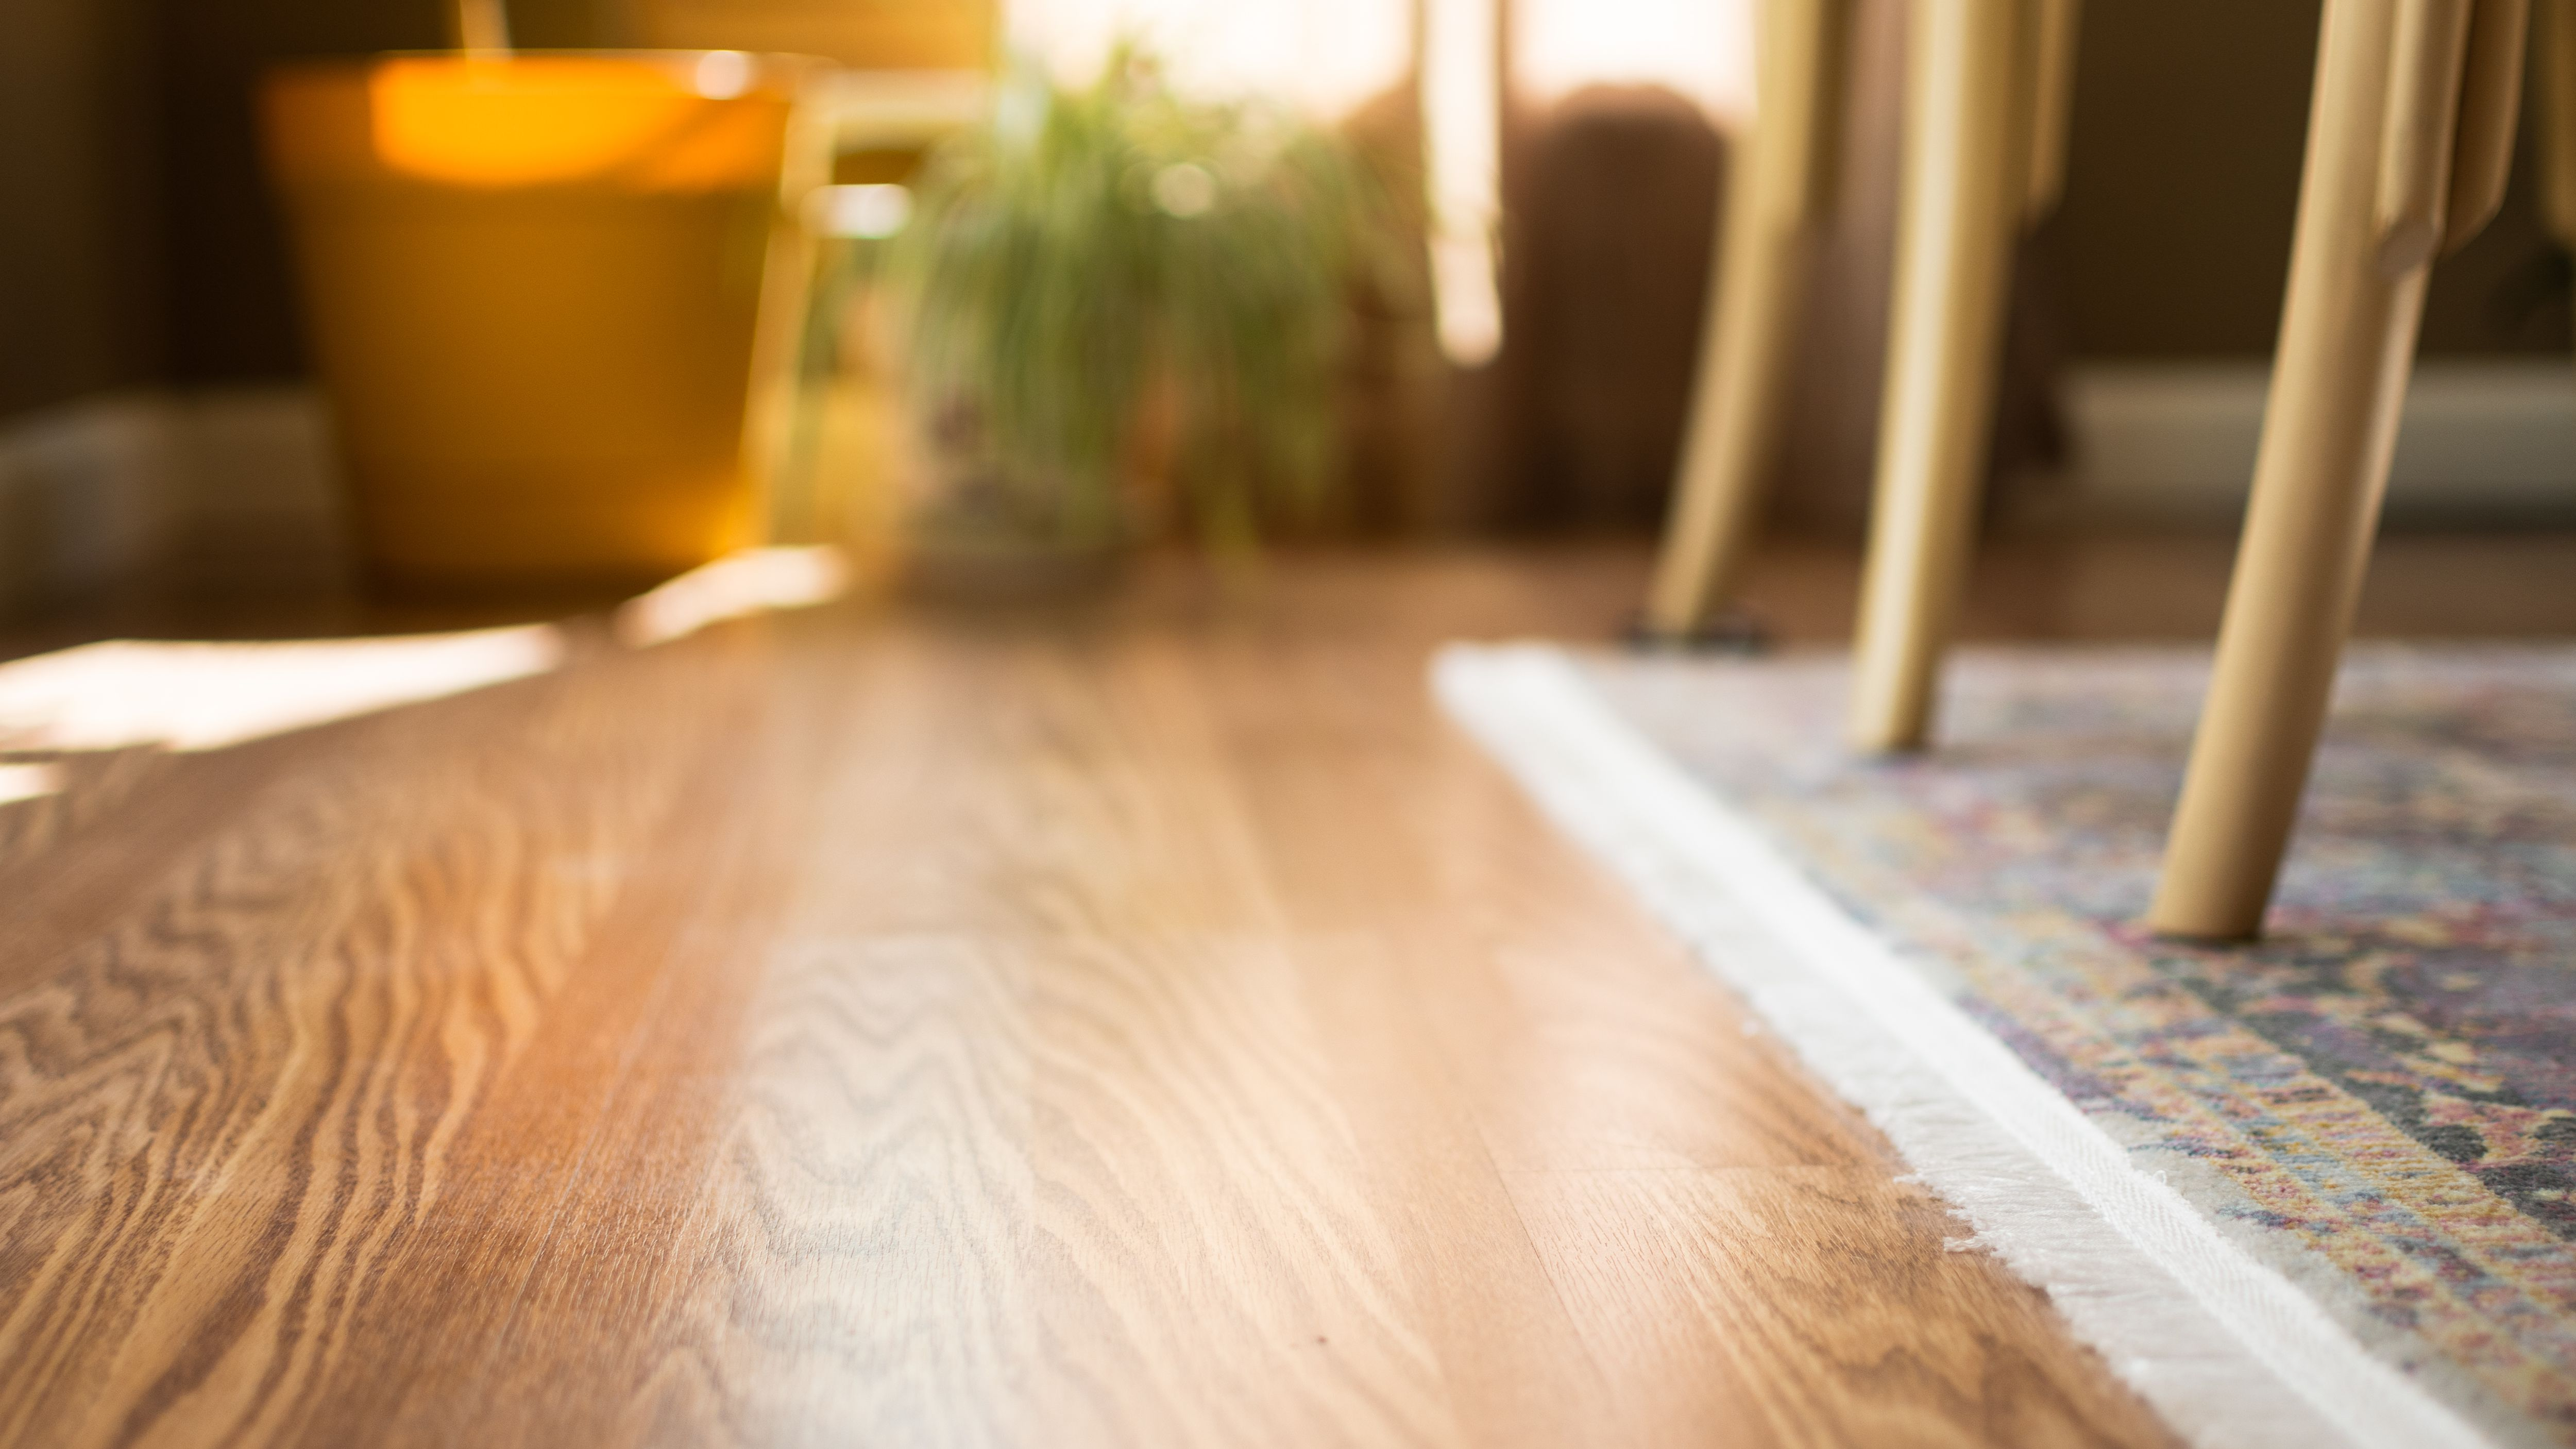 9 Laminate Floor Mistakes And How To, What To Do With Used Laminate Flooring